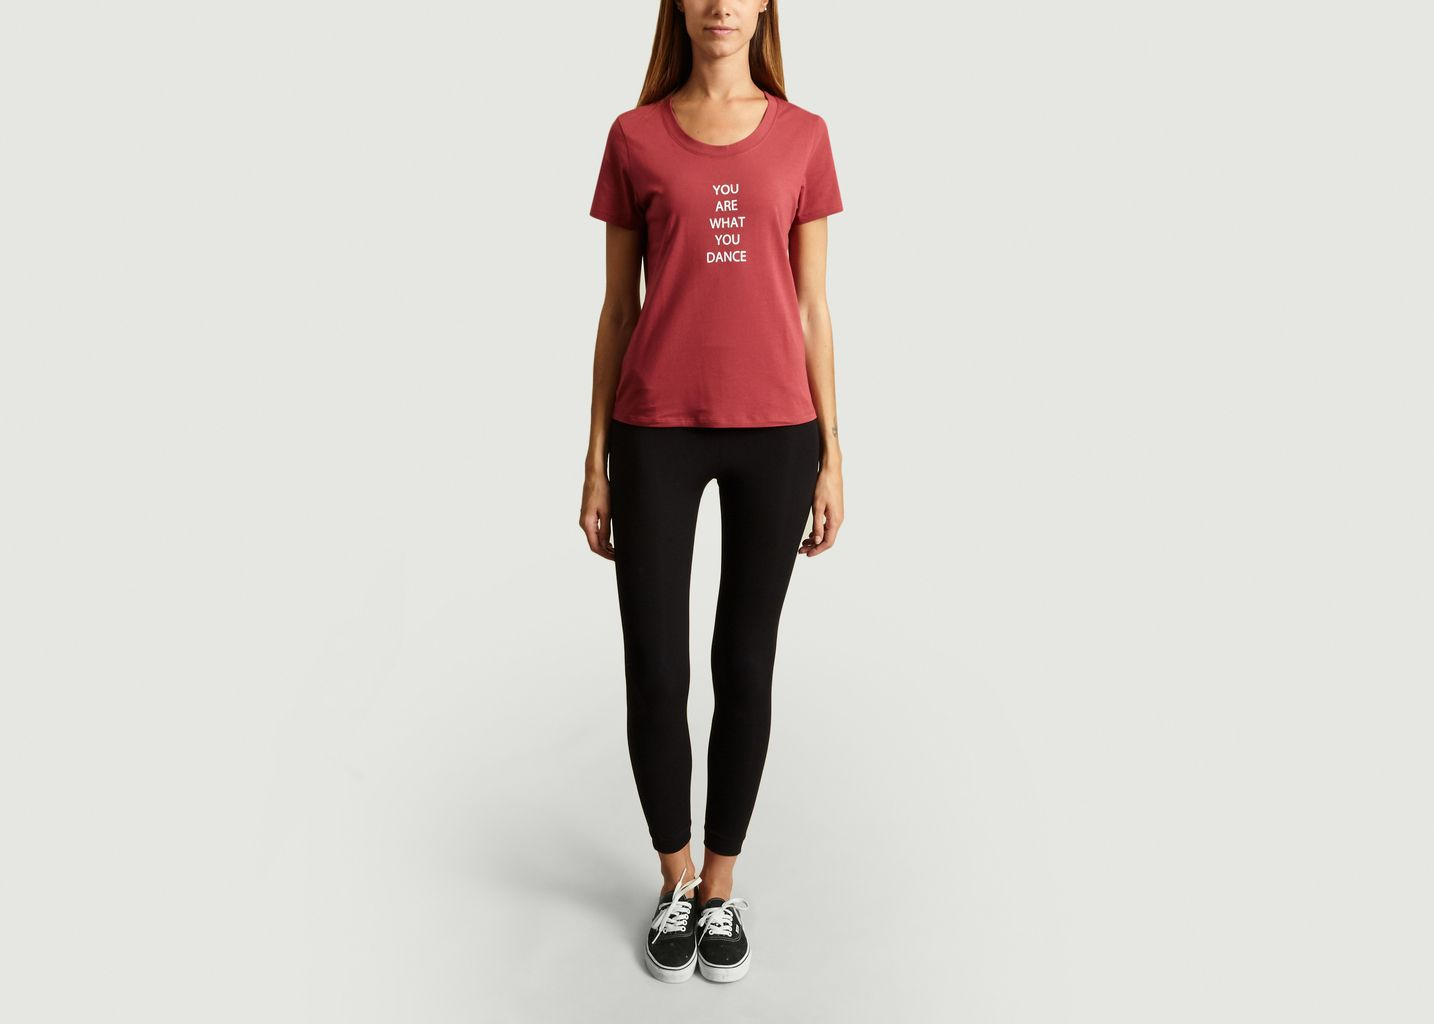 T-shirt You Are What You Dance - Repetto